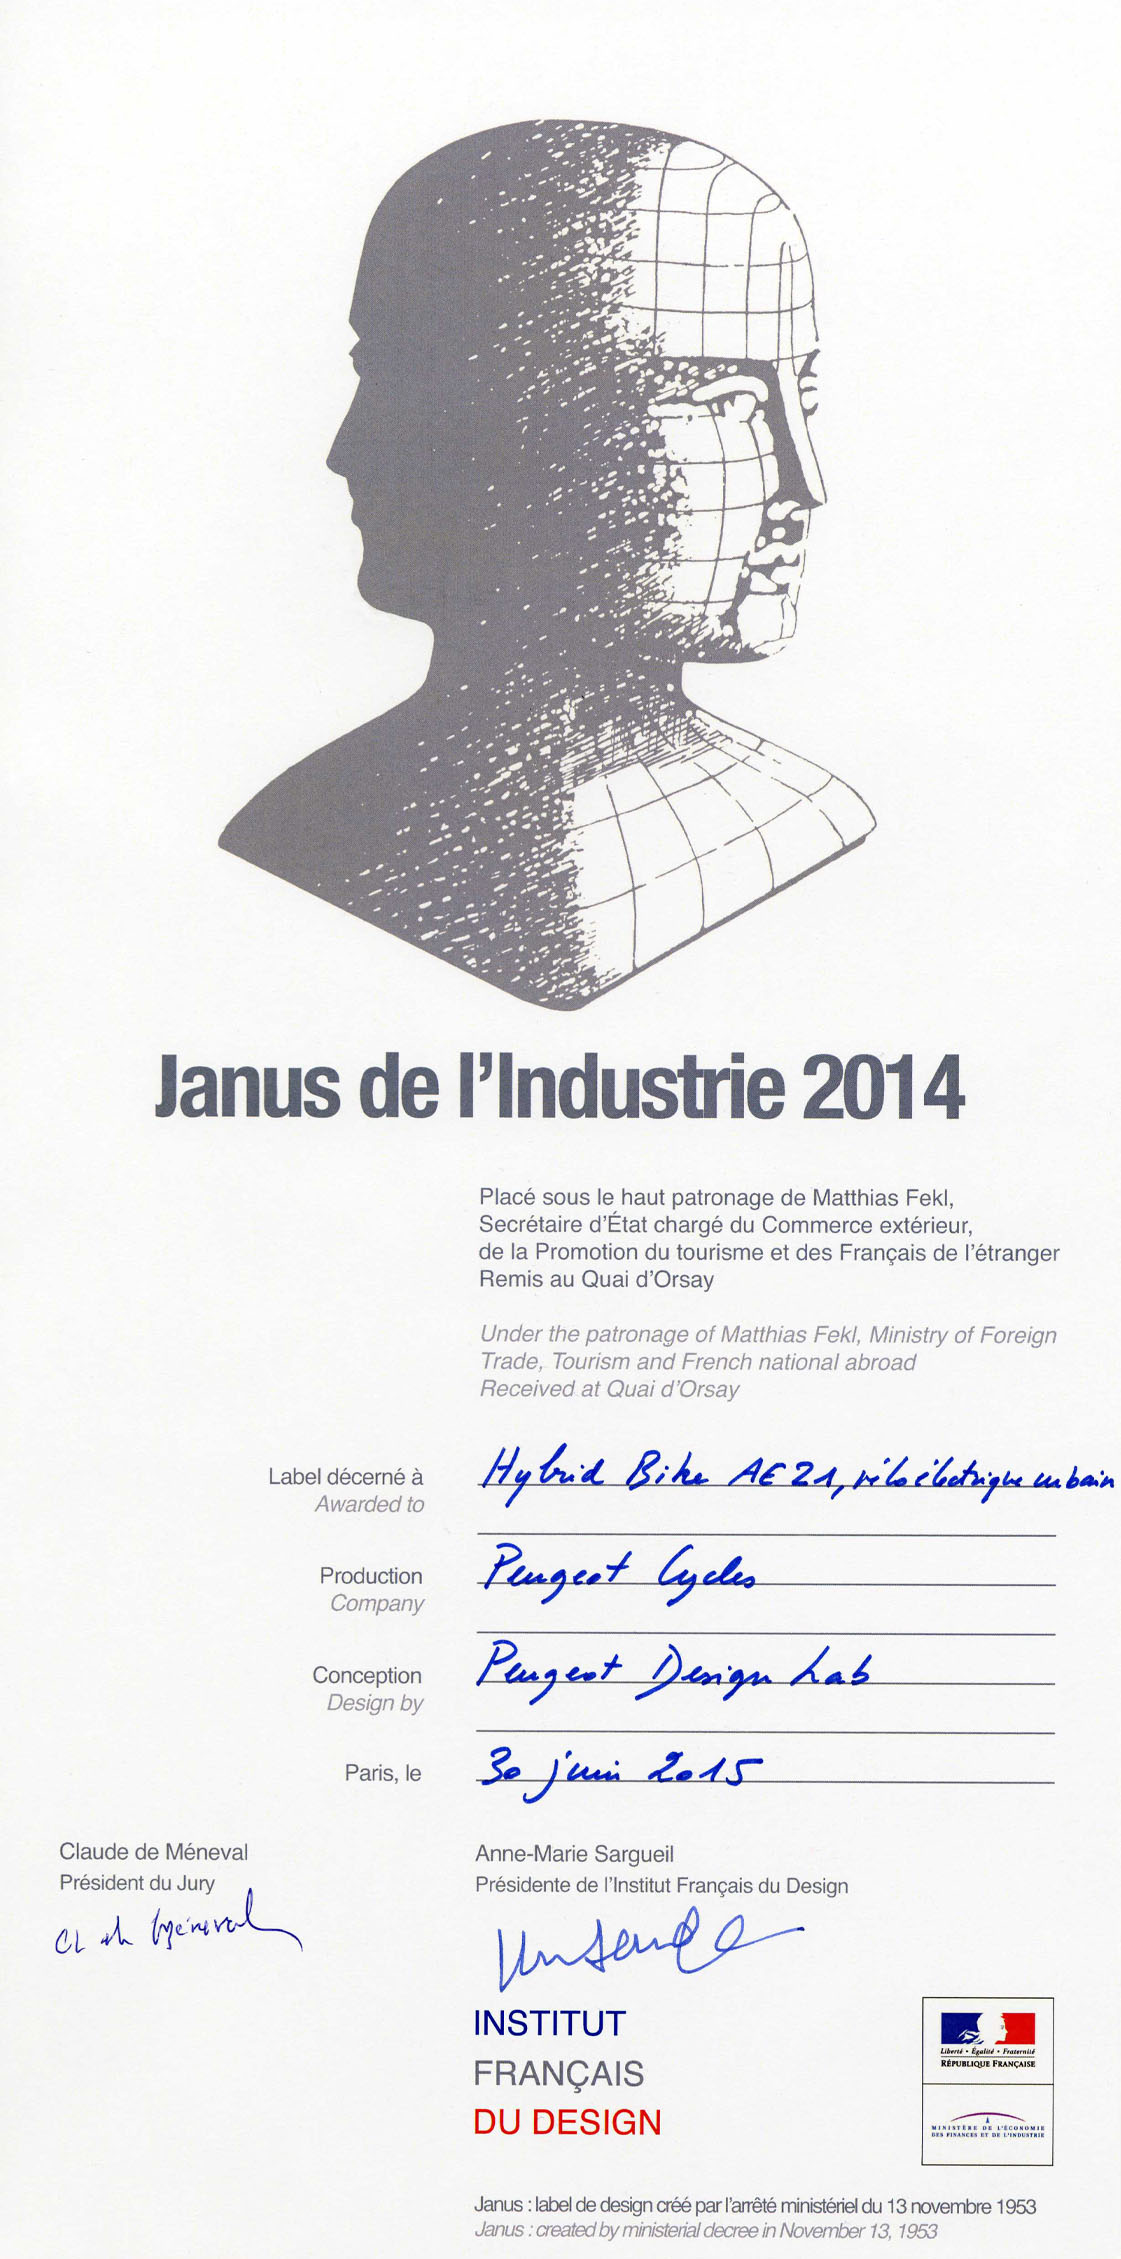 News - Photos - Janus du design